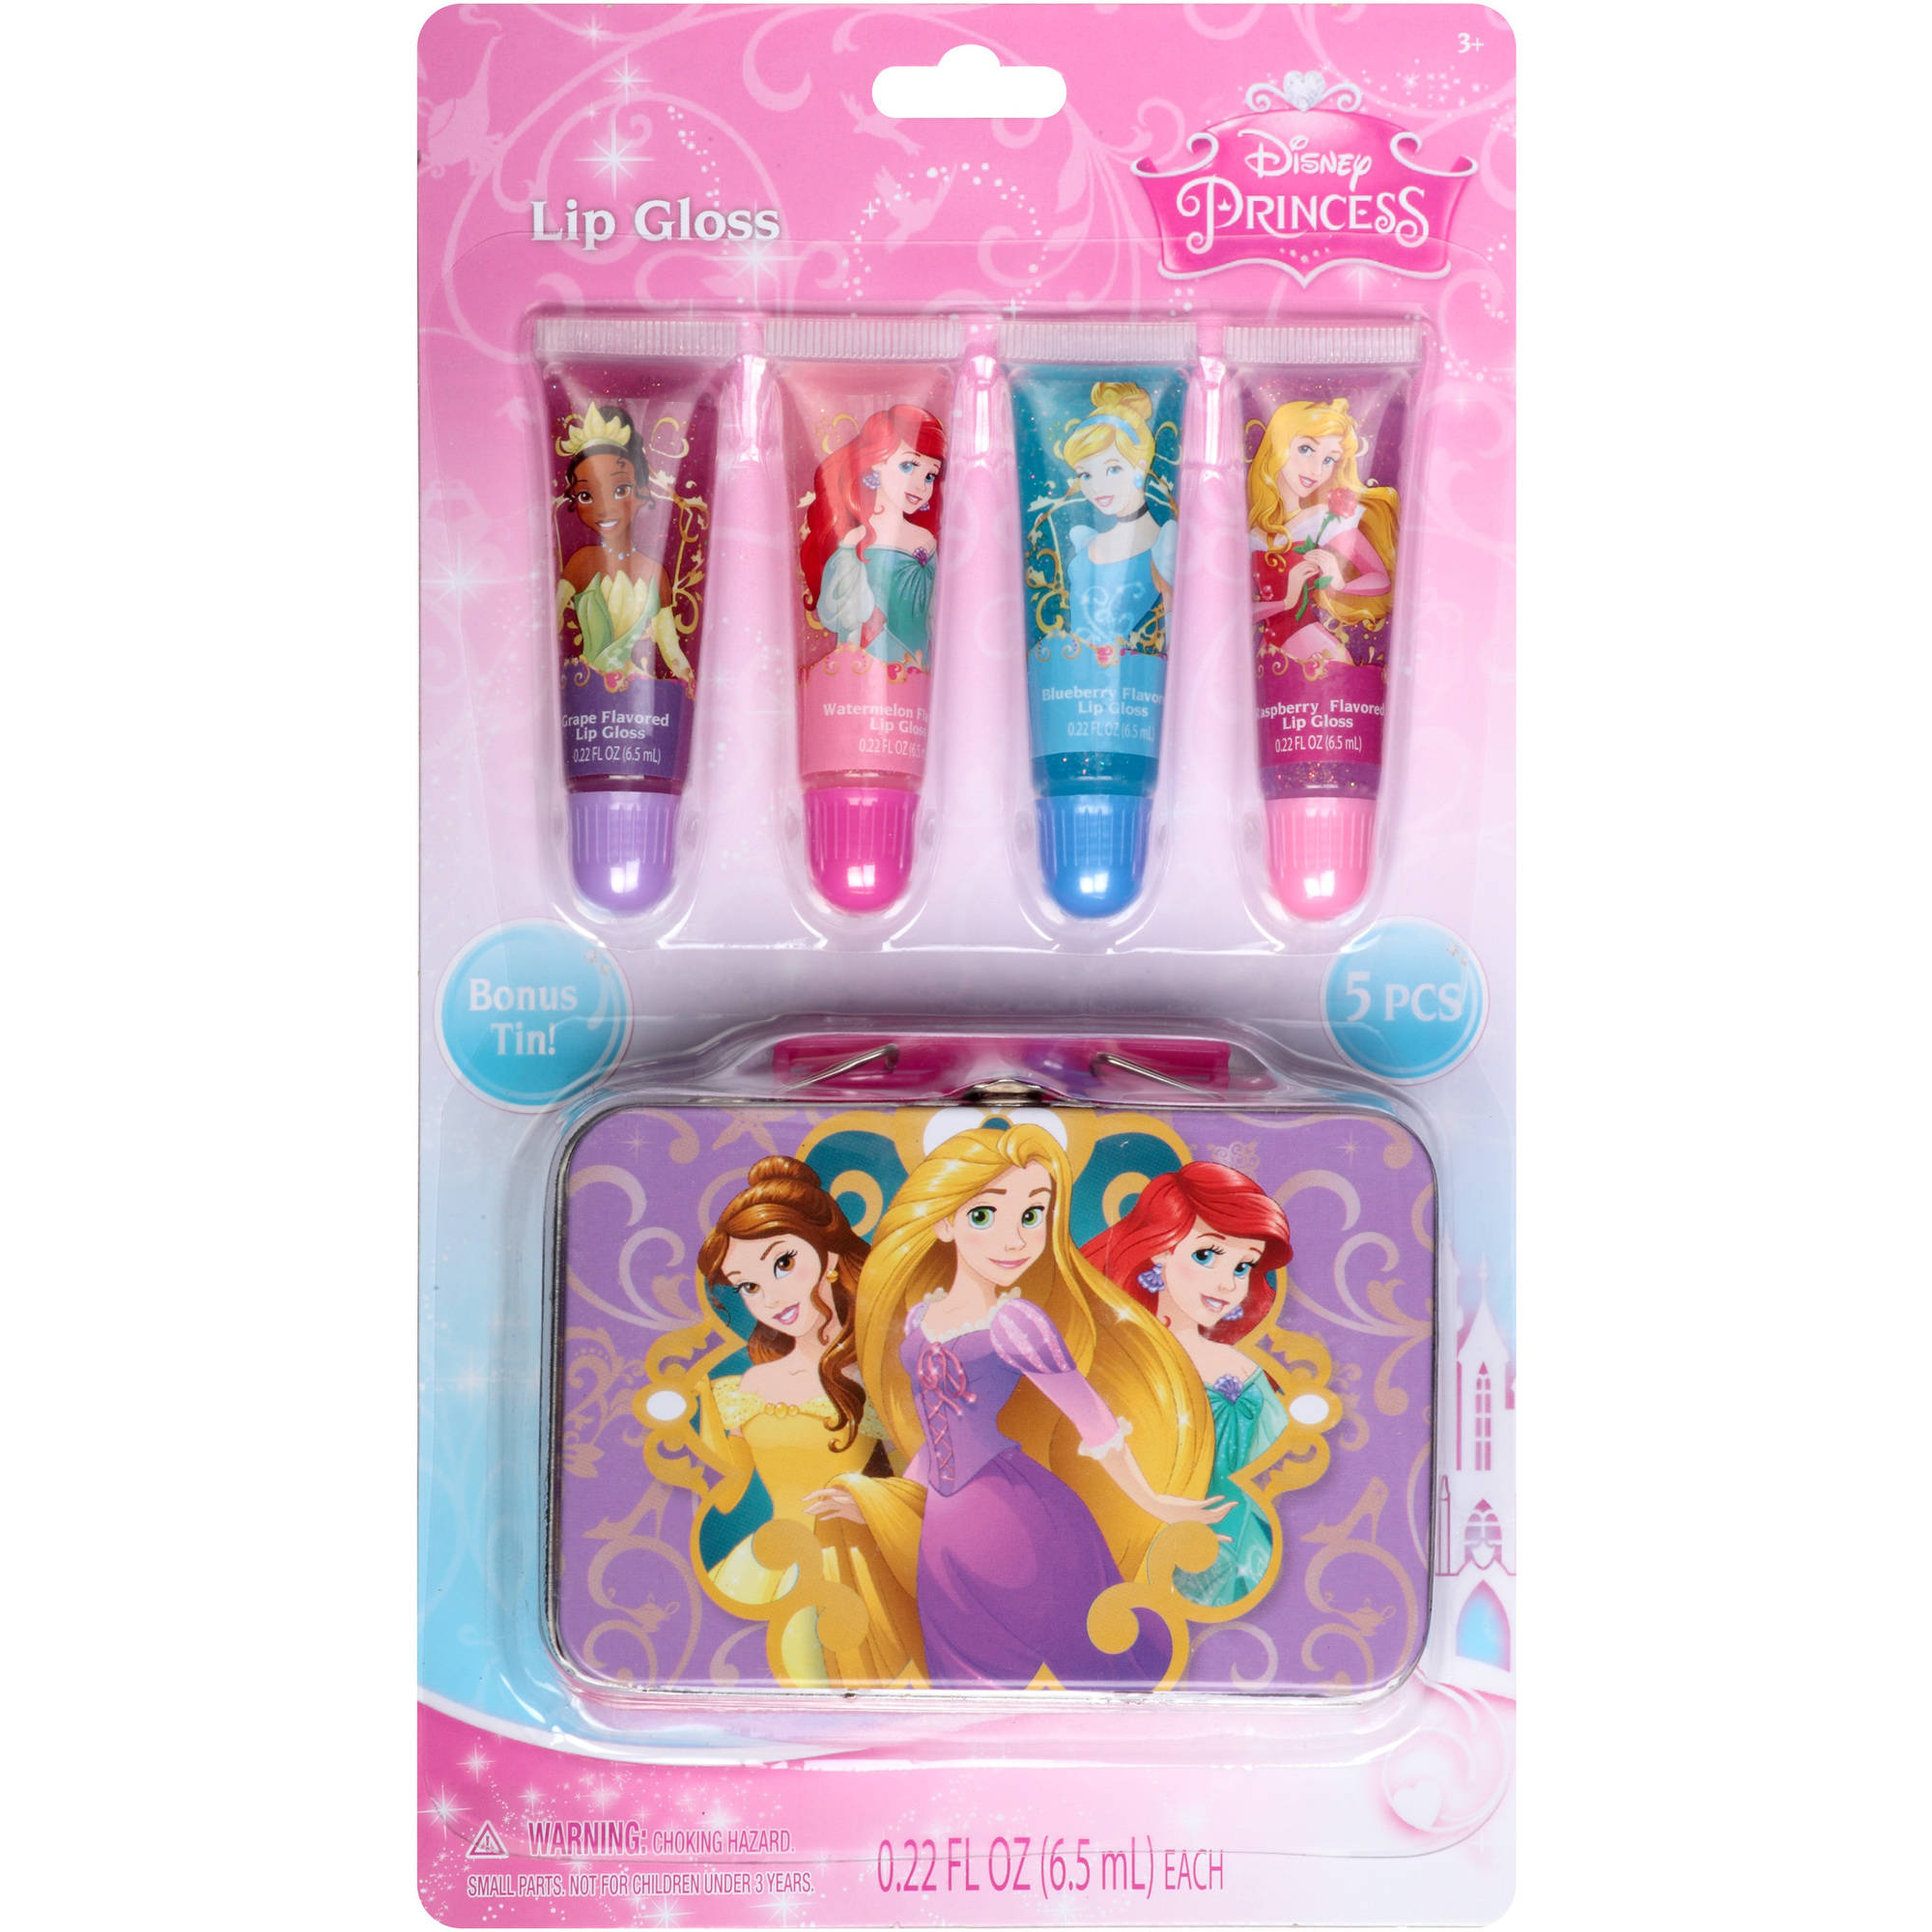 Disney Princess Lip Gloss Set, 5 pc